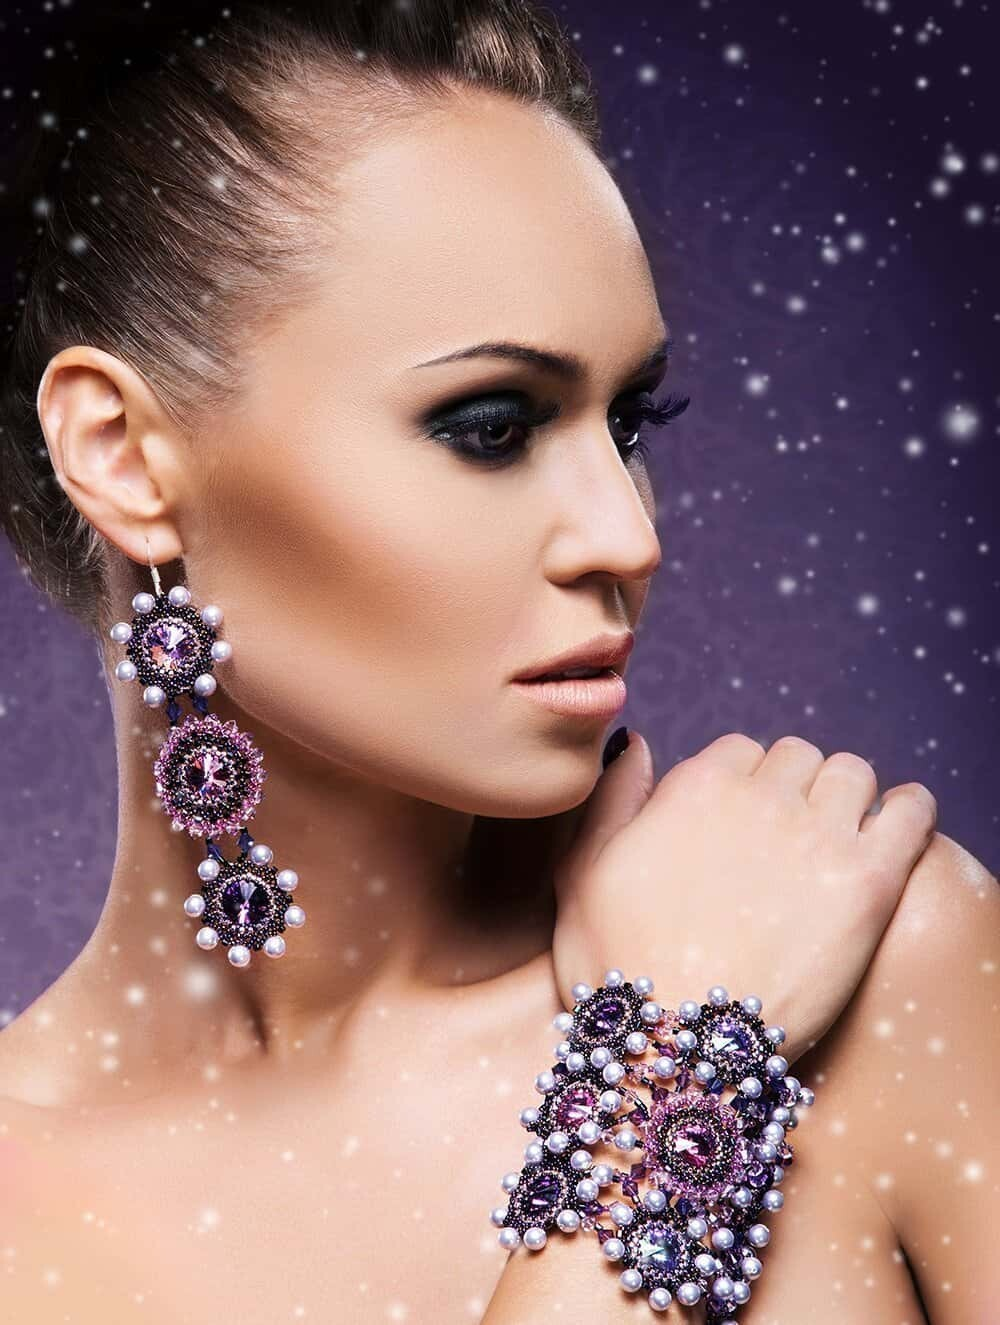 model with amethyst Jewelry